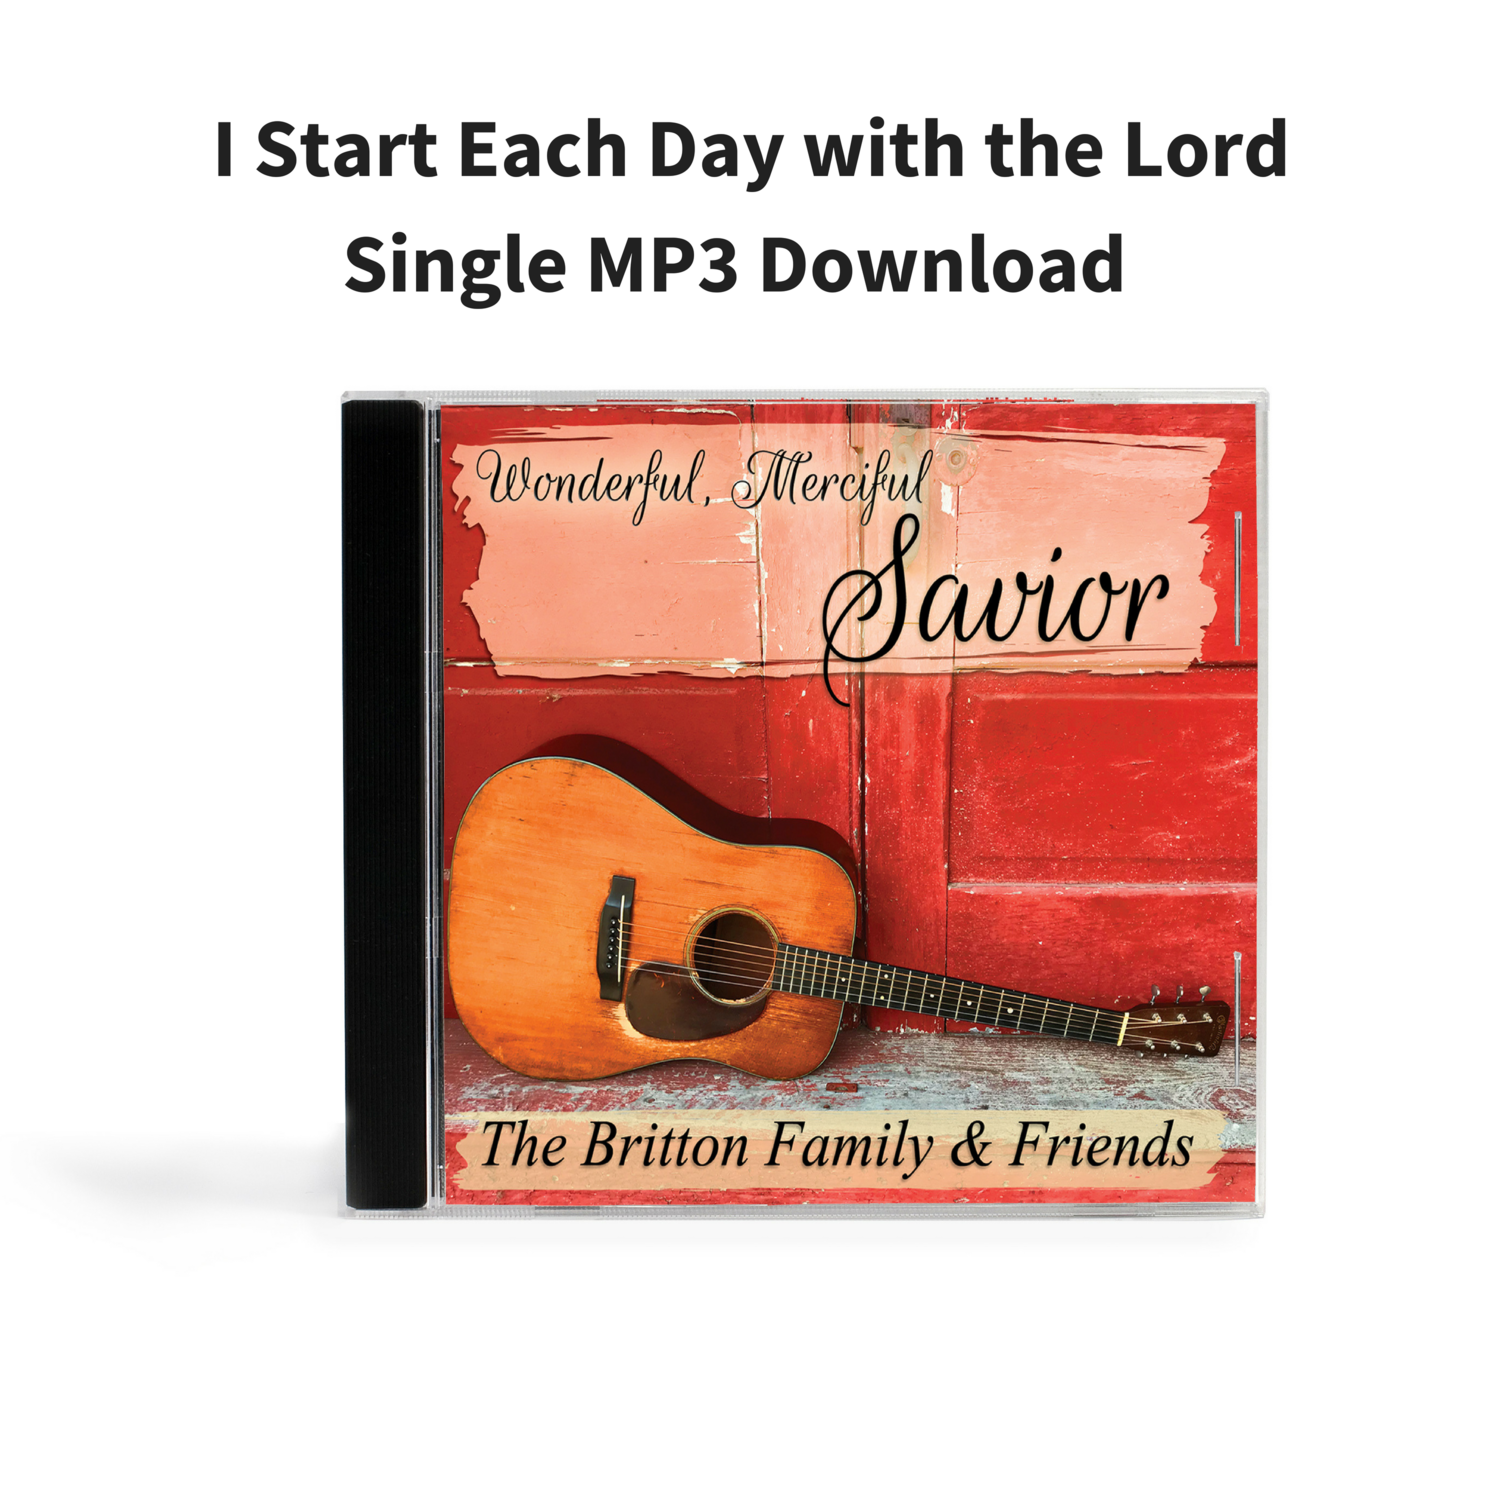 I Start Each Day with the Lord - Single MP3 Download